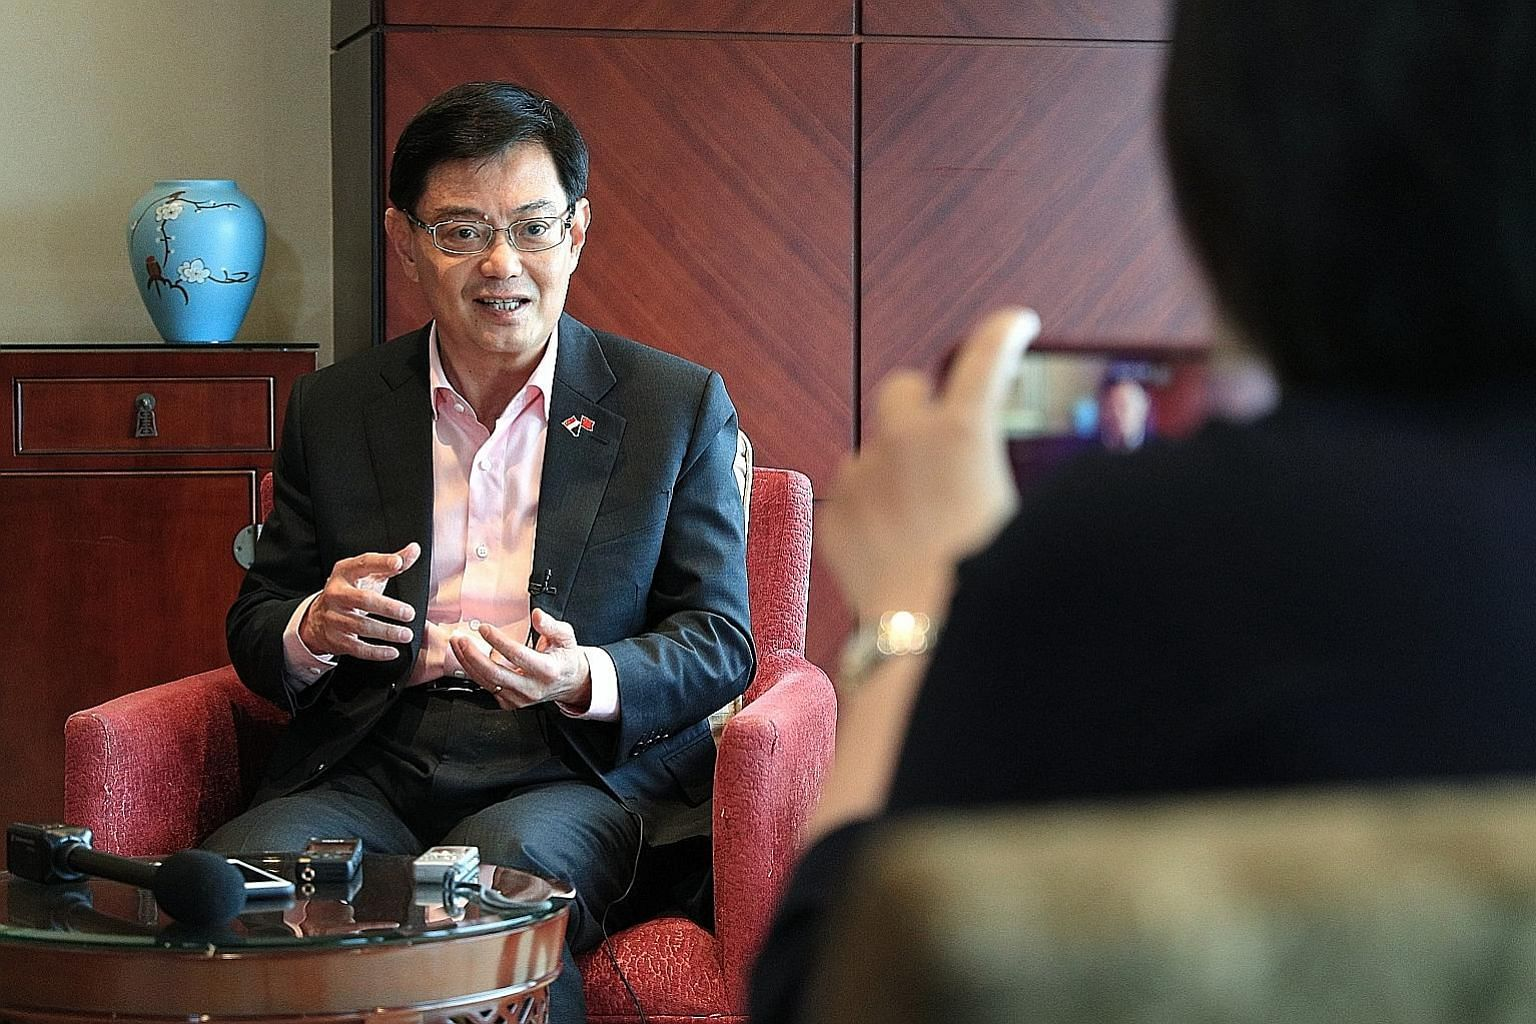 """Deputy Prime Minister Heng Swee Keat spoke to the Singapore media in Shenzhen yesterday as he wrapped up his visit to China. He said Beijing was making preparations for its people to """"stay resilient"""" if the trade war with the US escalates further."""